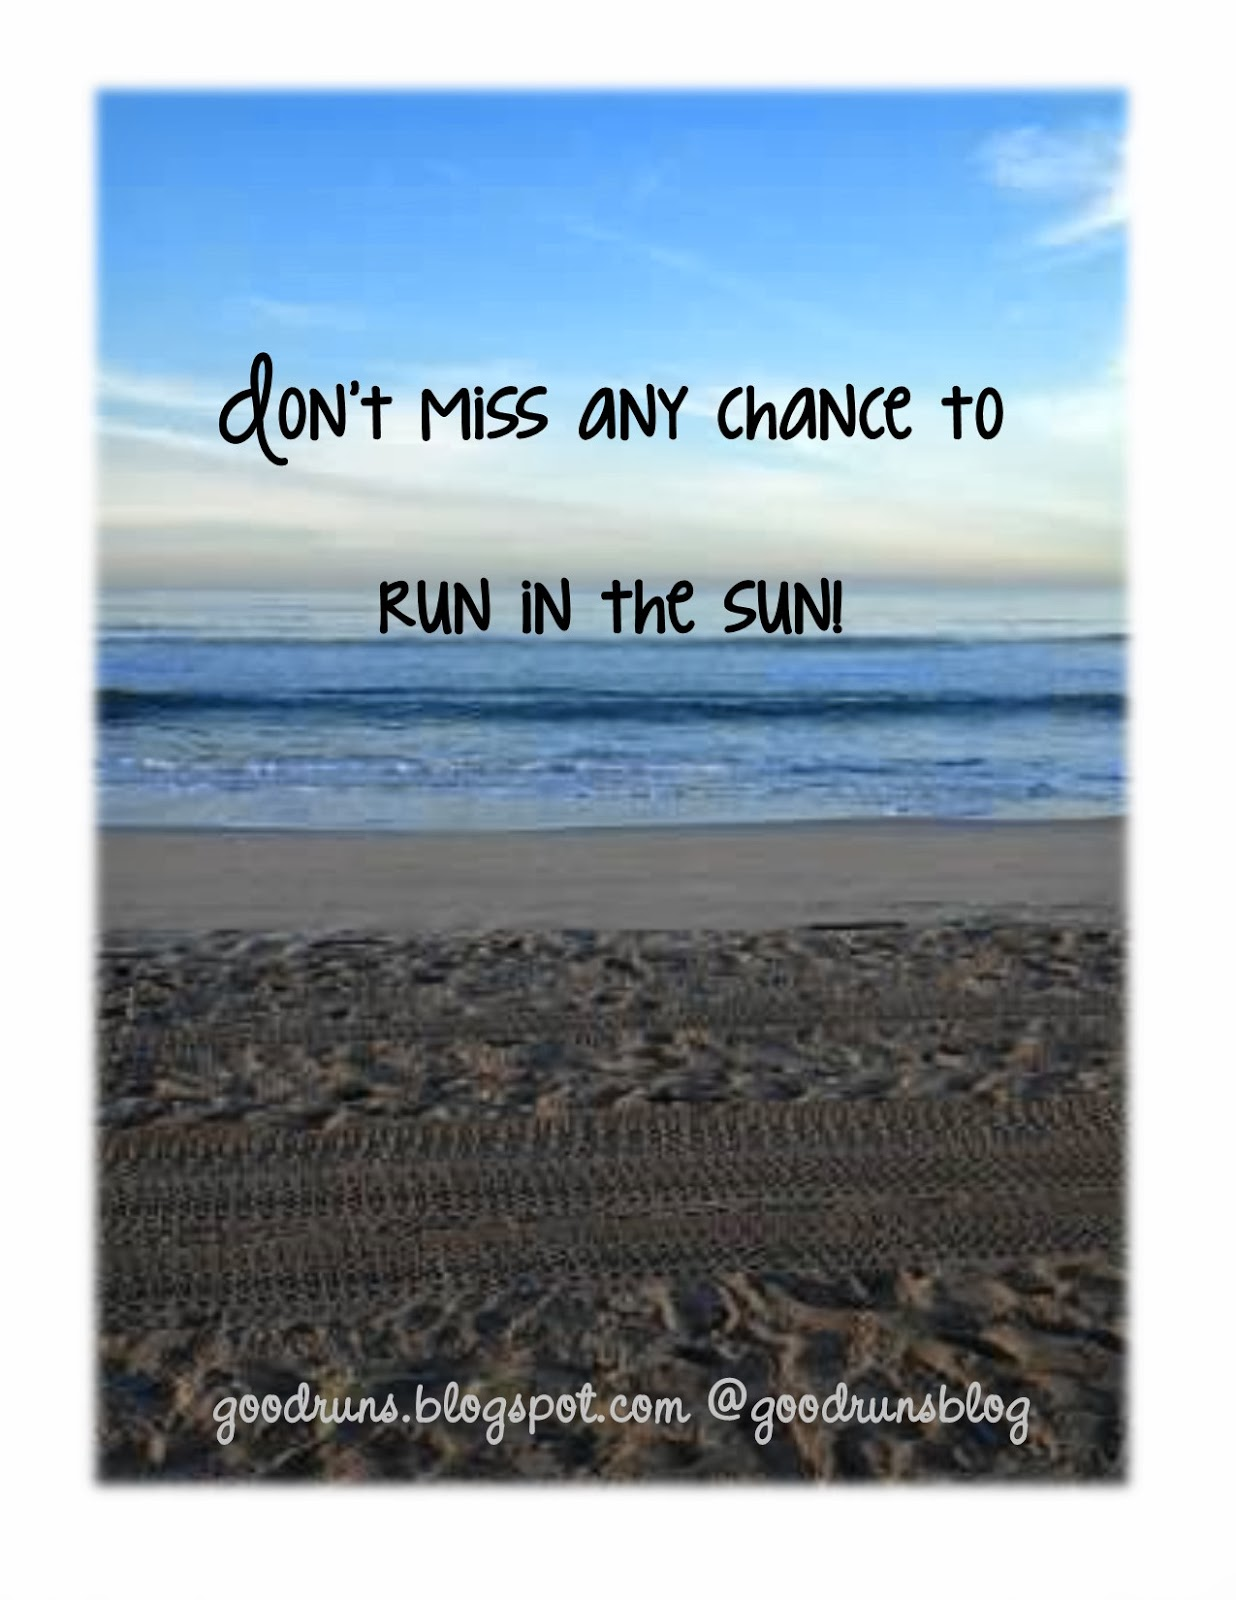 don't miss any chance to run in the sun